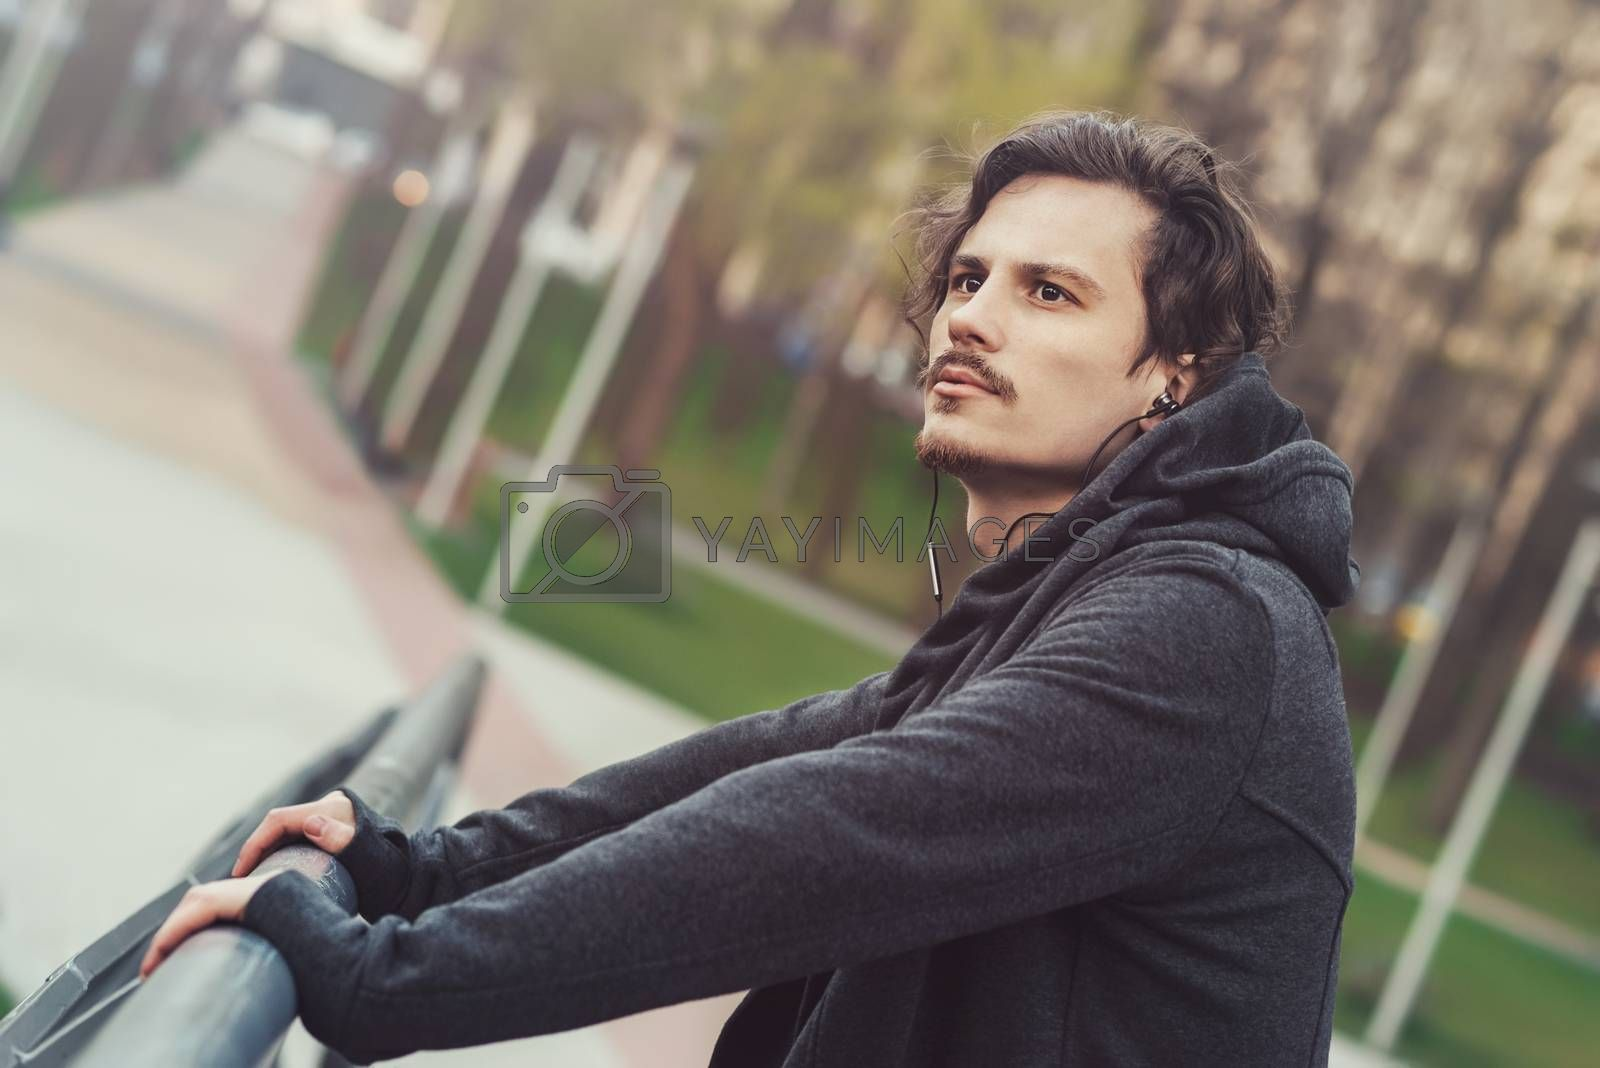 Portrait of a Young man listening to music, standing on the bridge and enjoying the beautiful view.